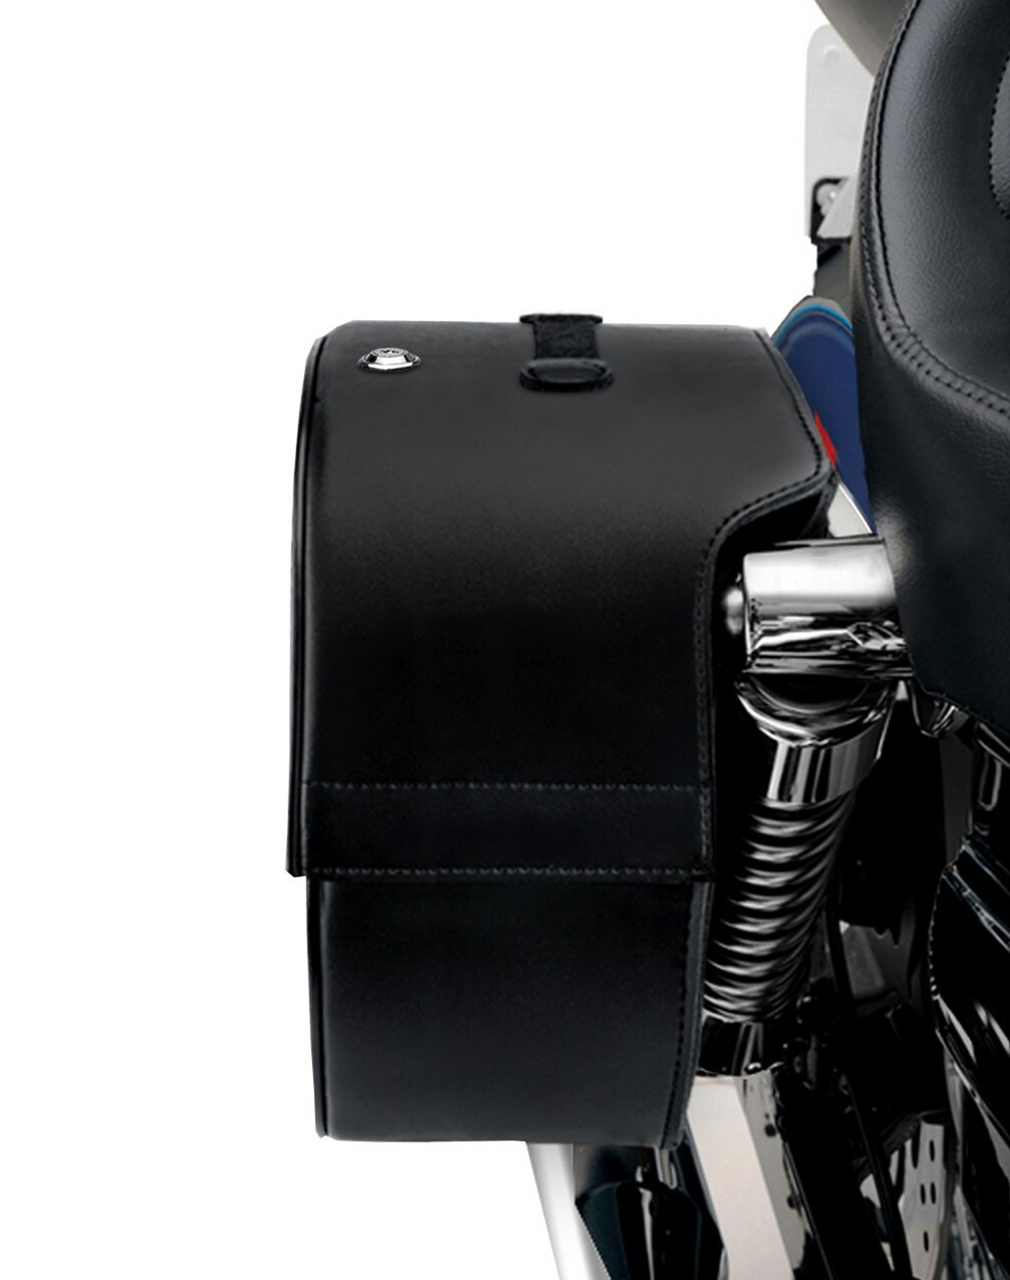 Viking Armor Shock Cutout Studded Large Motorcycle Saddlebags For Harley Dyna Switchback Shock Cutout View